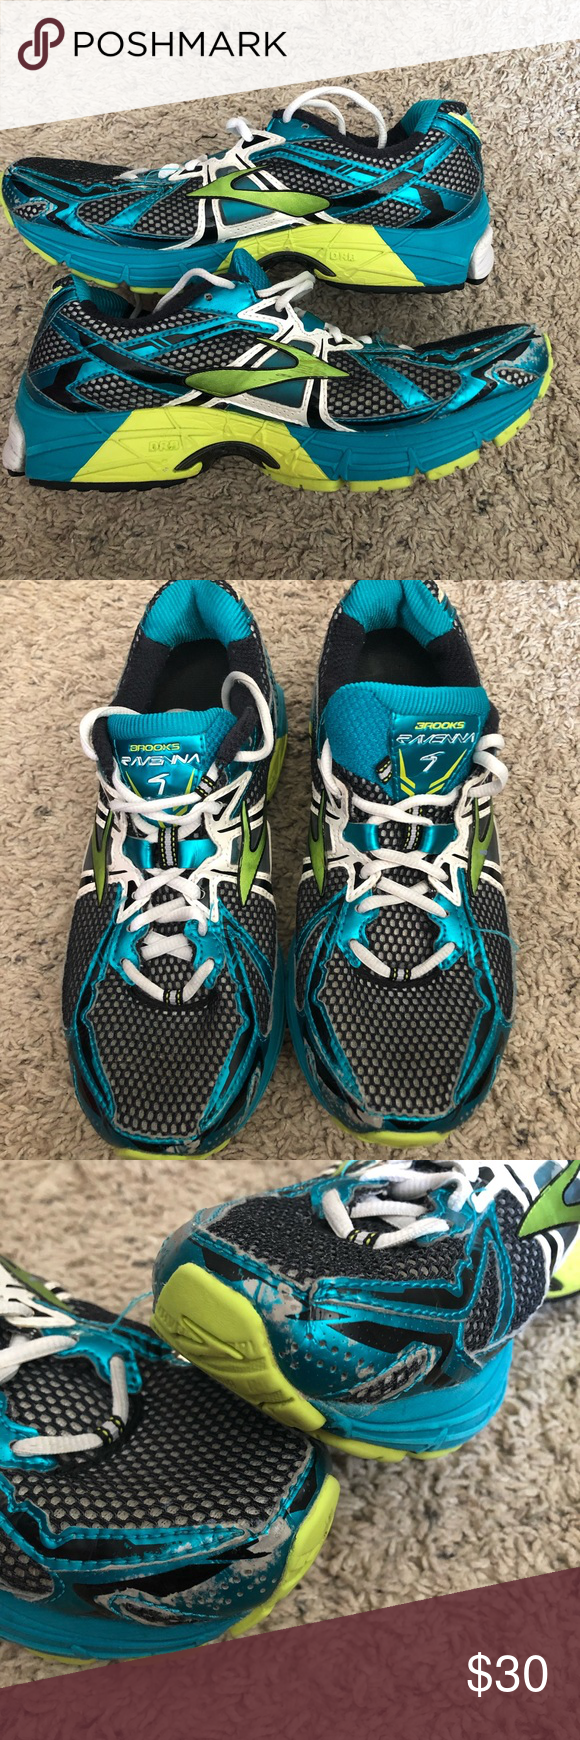 a20f821705e Womens Brooks Ravenna 4 Running Shoes 8.5 Shoes are in excellent overall  condition with plenty of